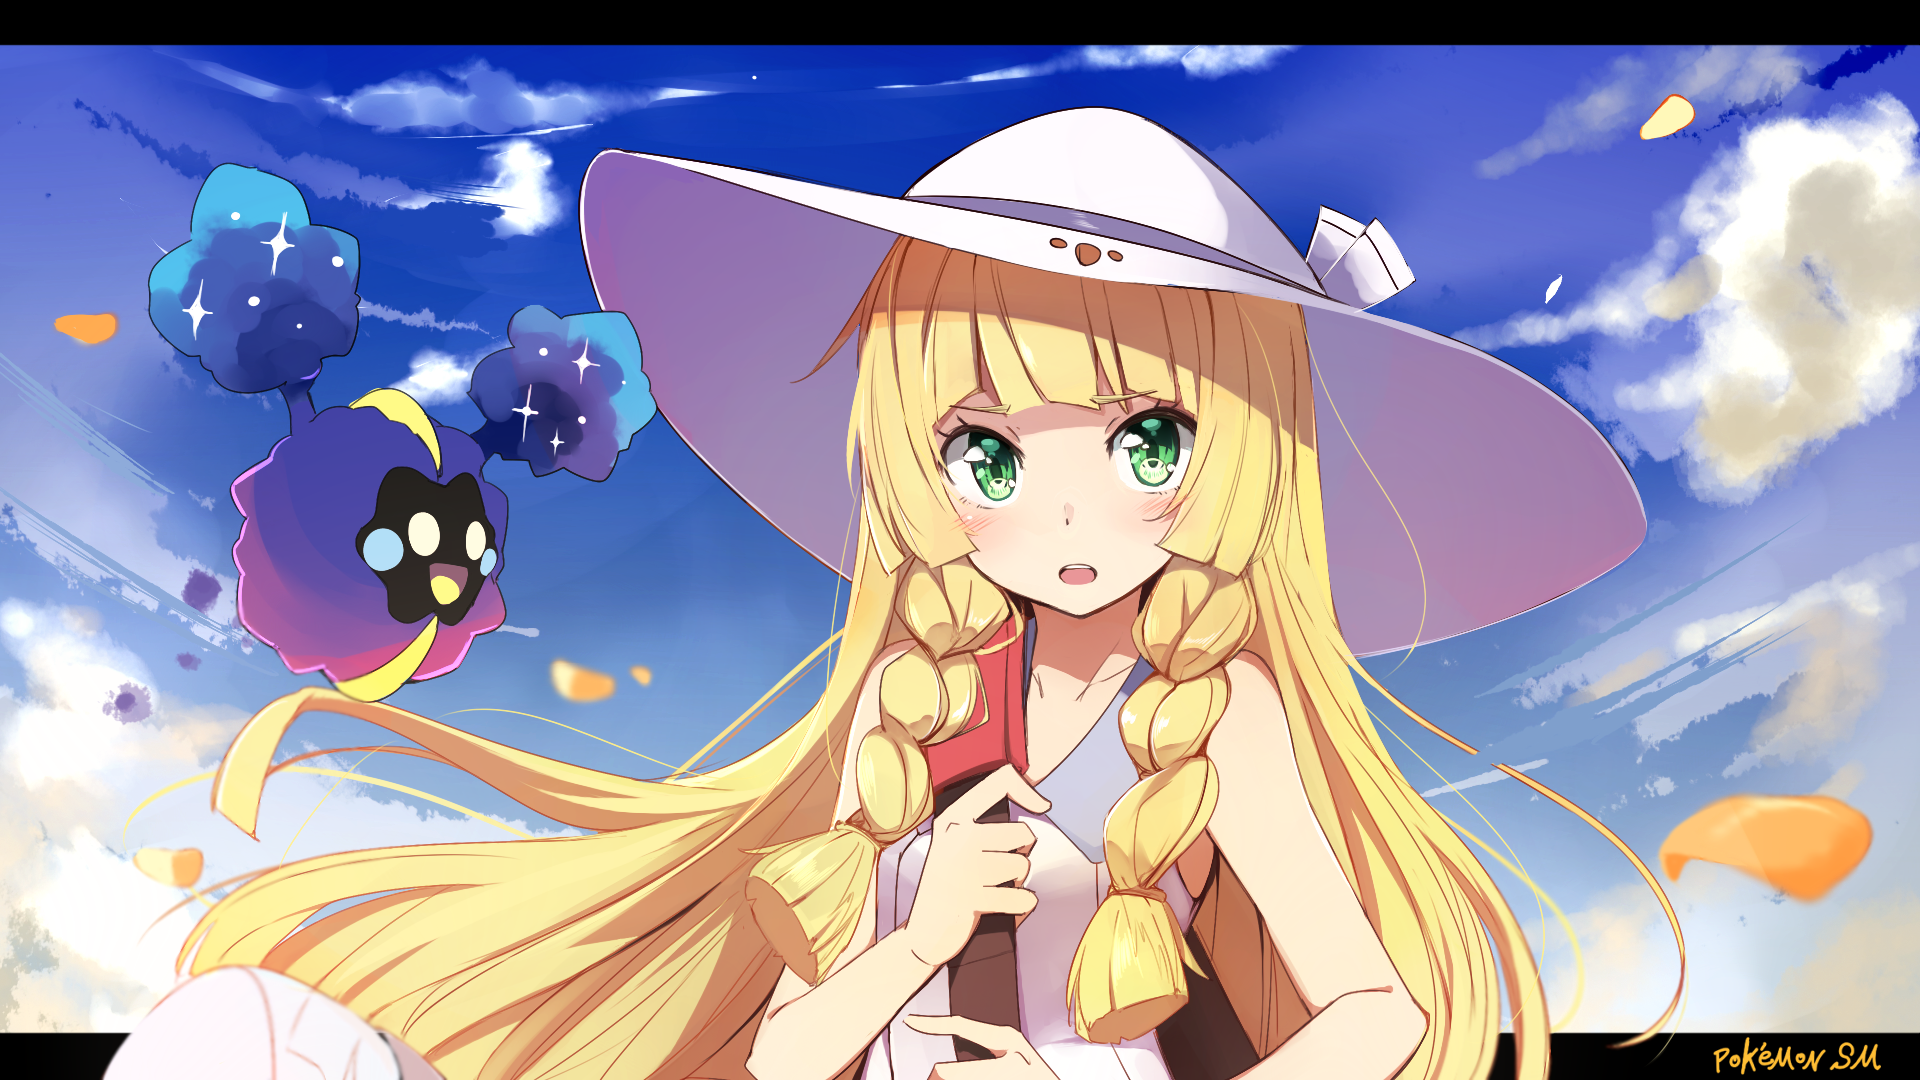 Video Game - Pokémon Sun and Moon  Lillie (Pokemon) Cosmog (Pokémon) Wallpaper